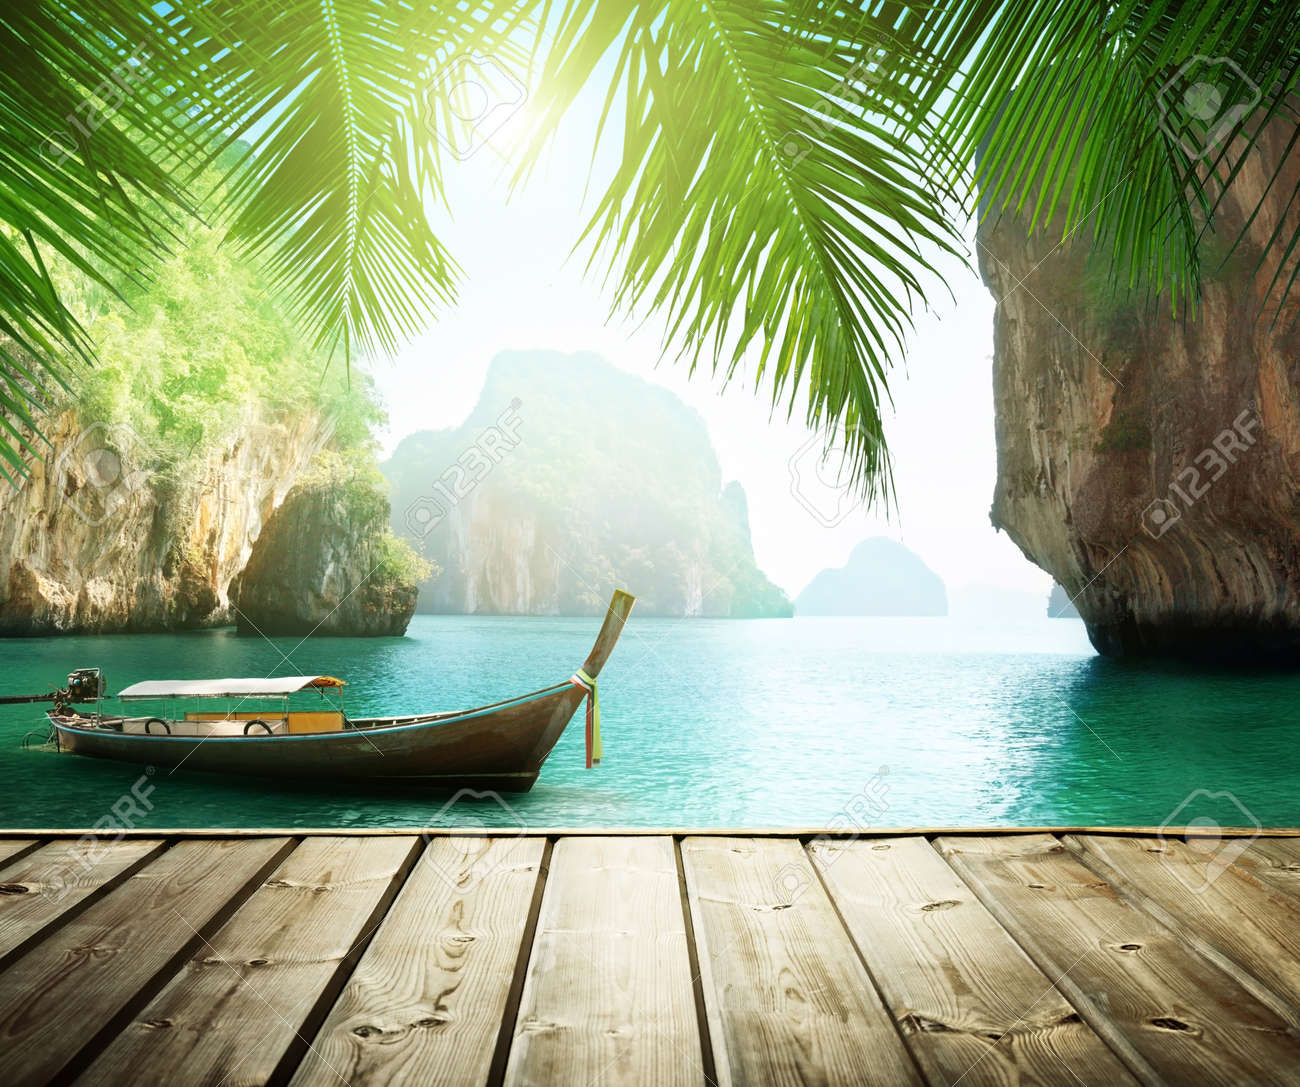 Adaman sea and wooden boat in Thailand - 50932502